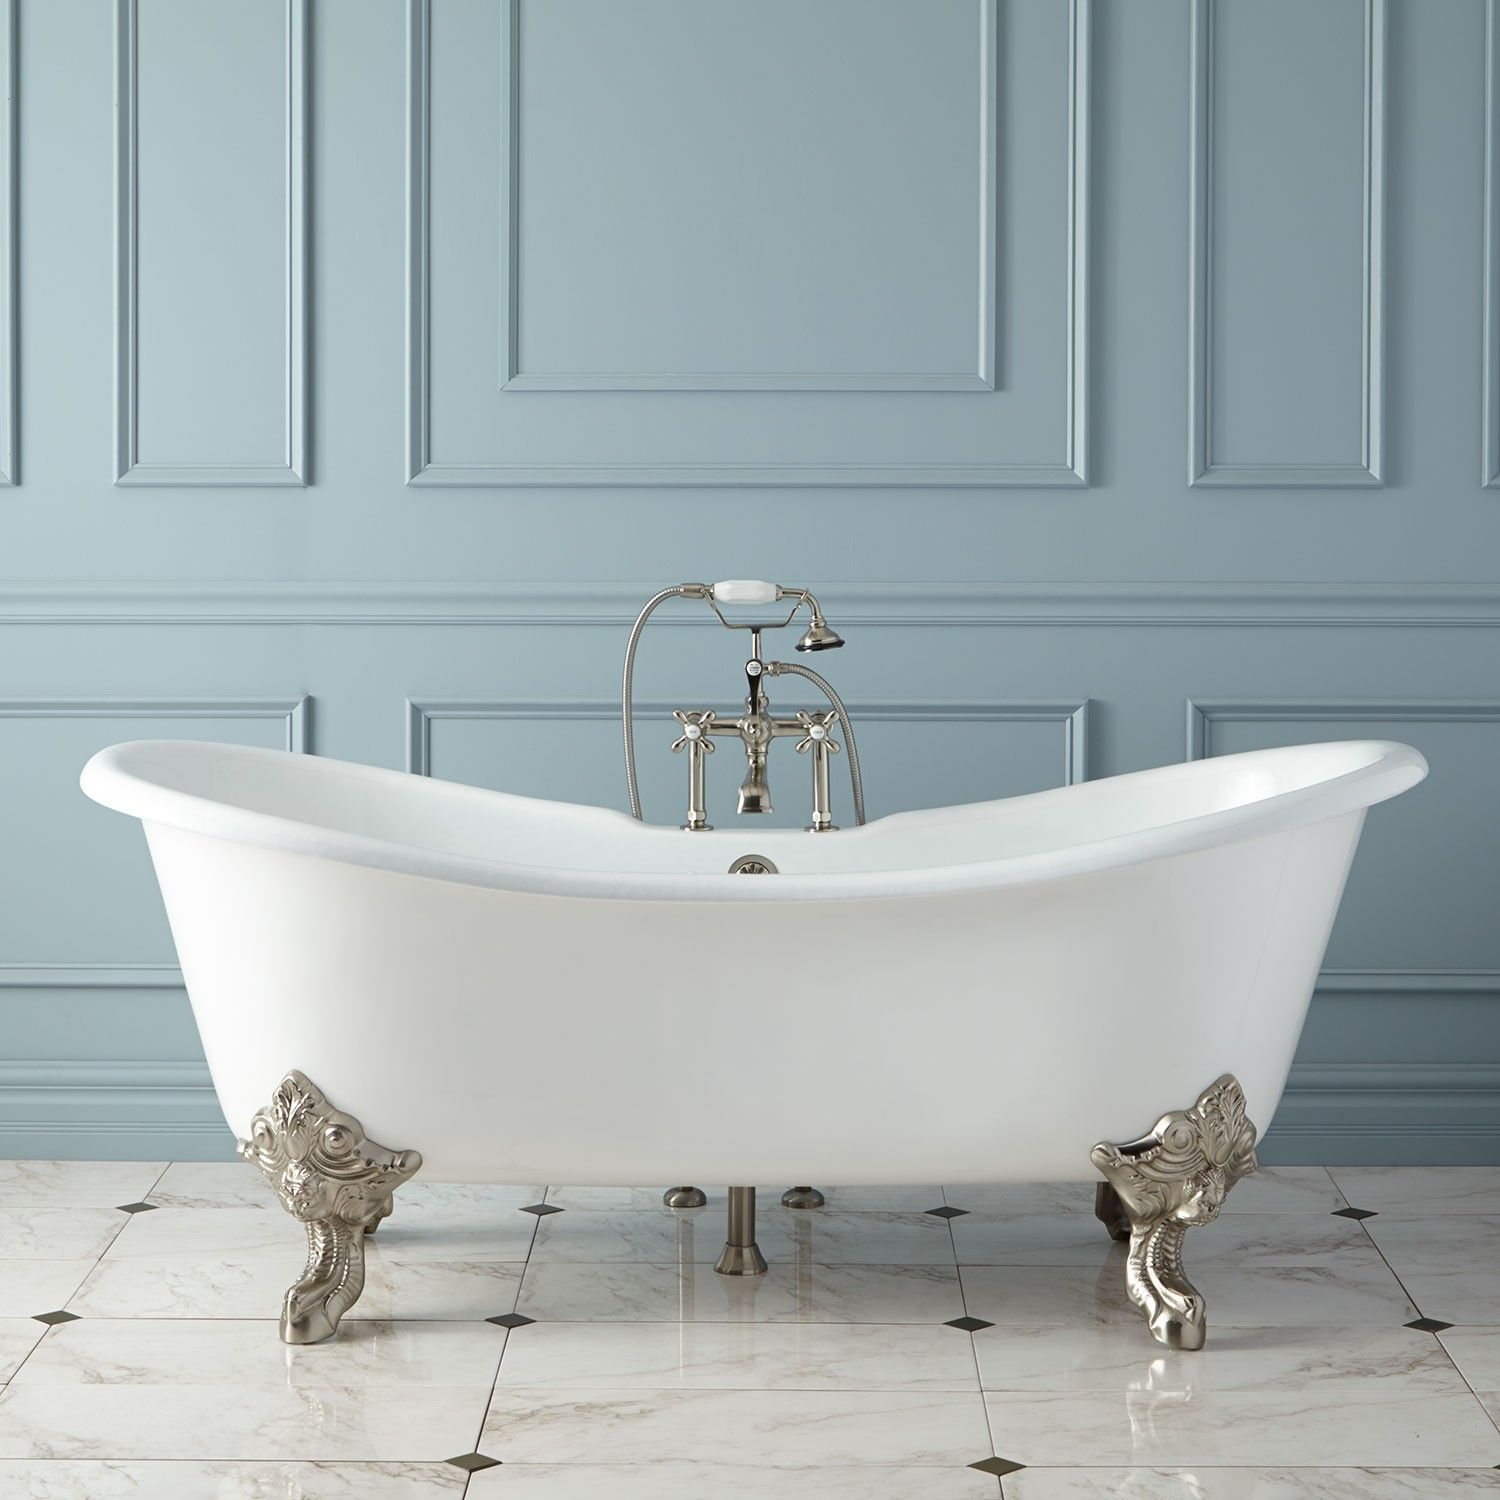 your photo double to apply freestanding randolph pedestal x iron ended interior agrimarques free tubs rim morris of ordinary standing cast inch canada com soaker appealing with tub small bath